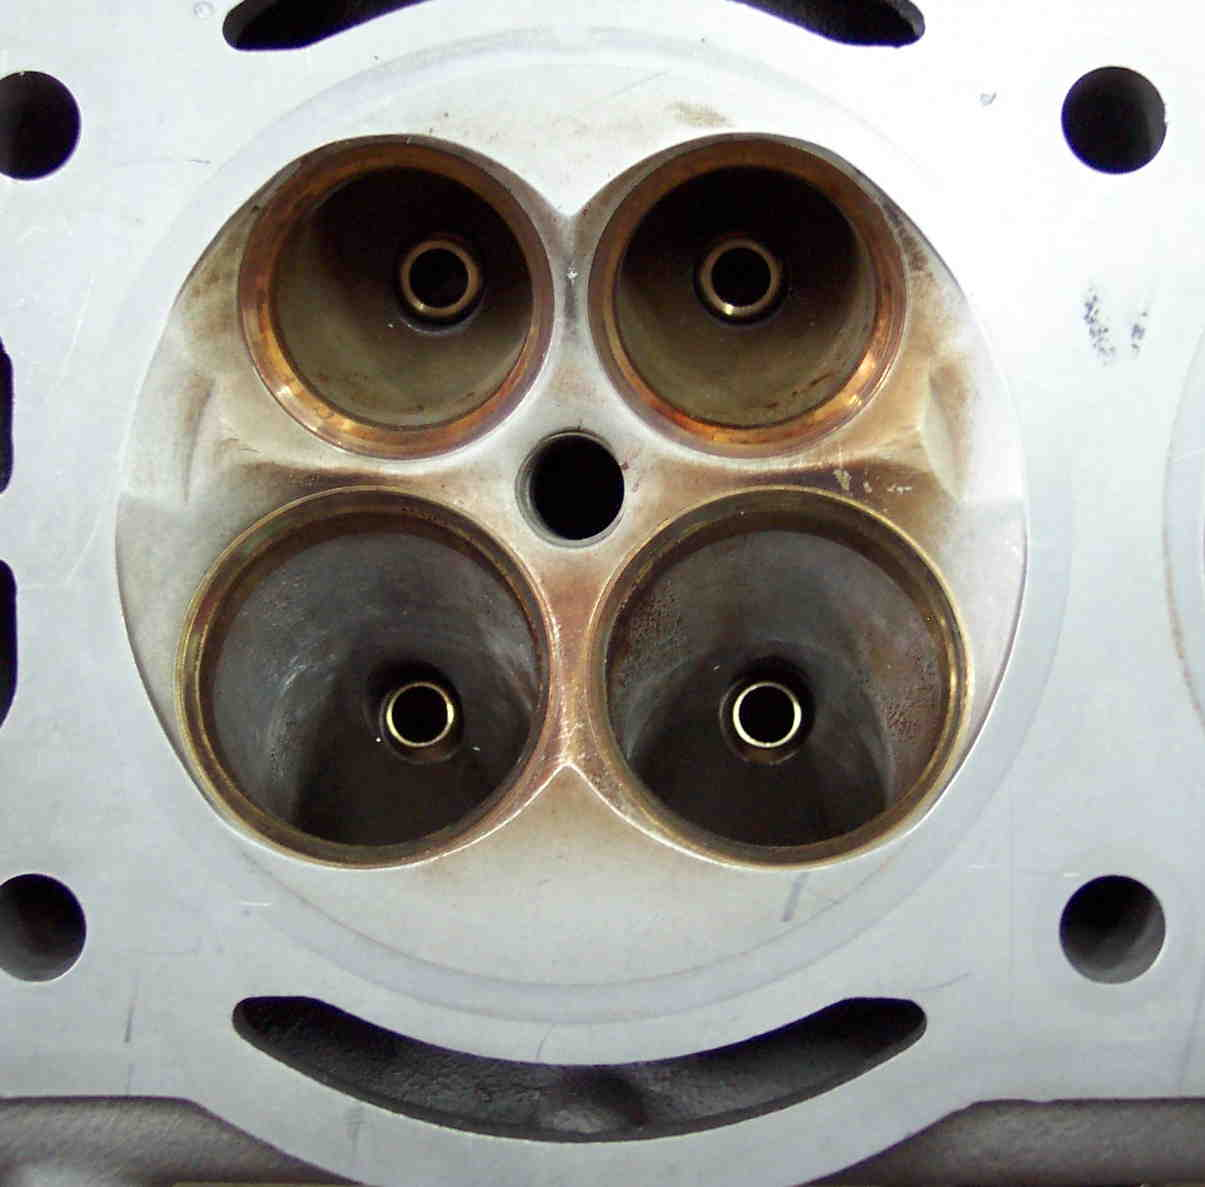 Our list of engine rebuild tips includes combustion chamber volumes.